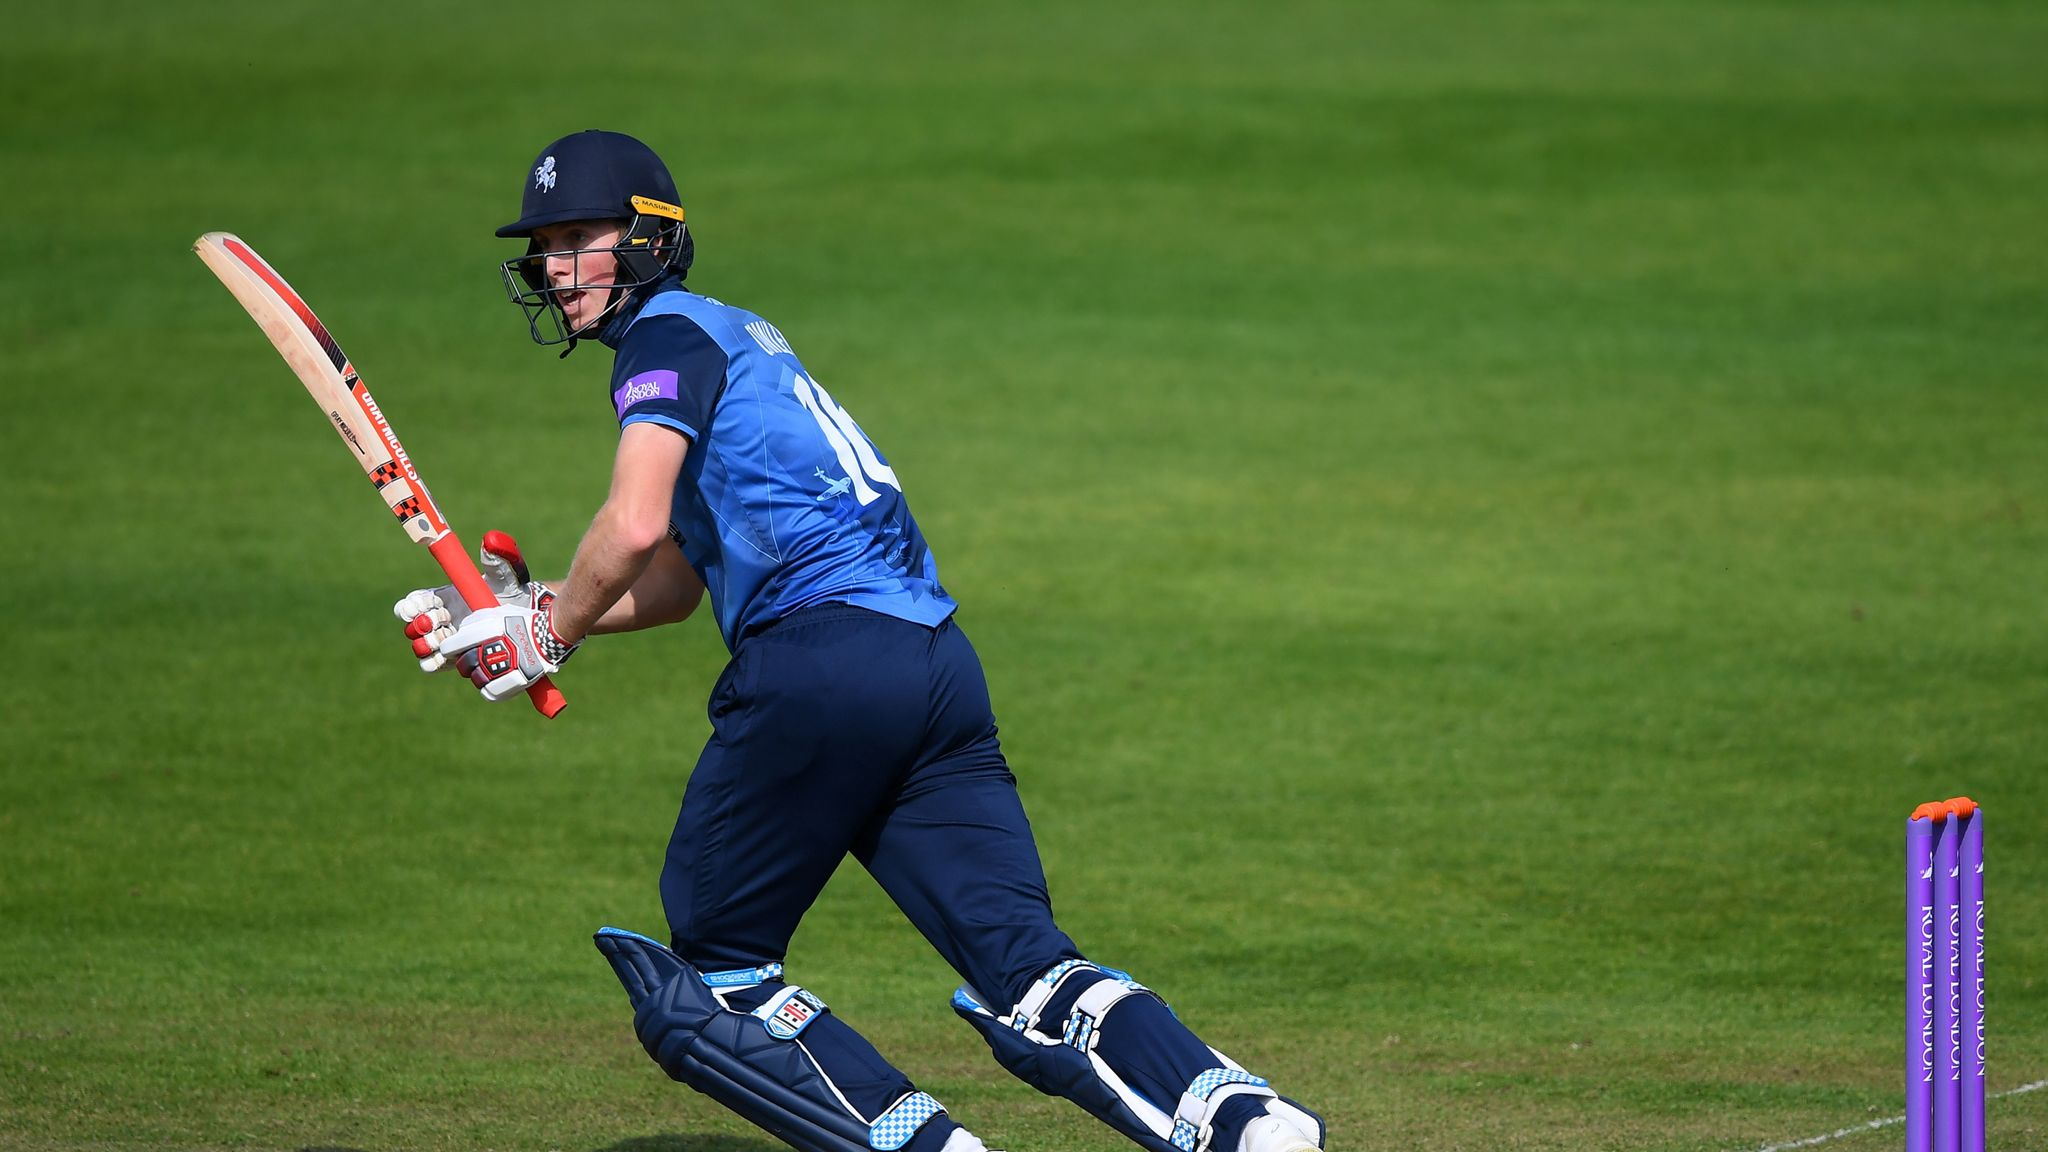 Ben Stokes says The Hundred will be 'awesome' for England hopefuls